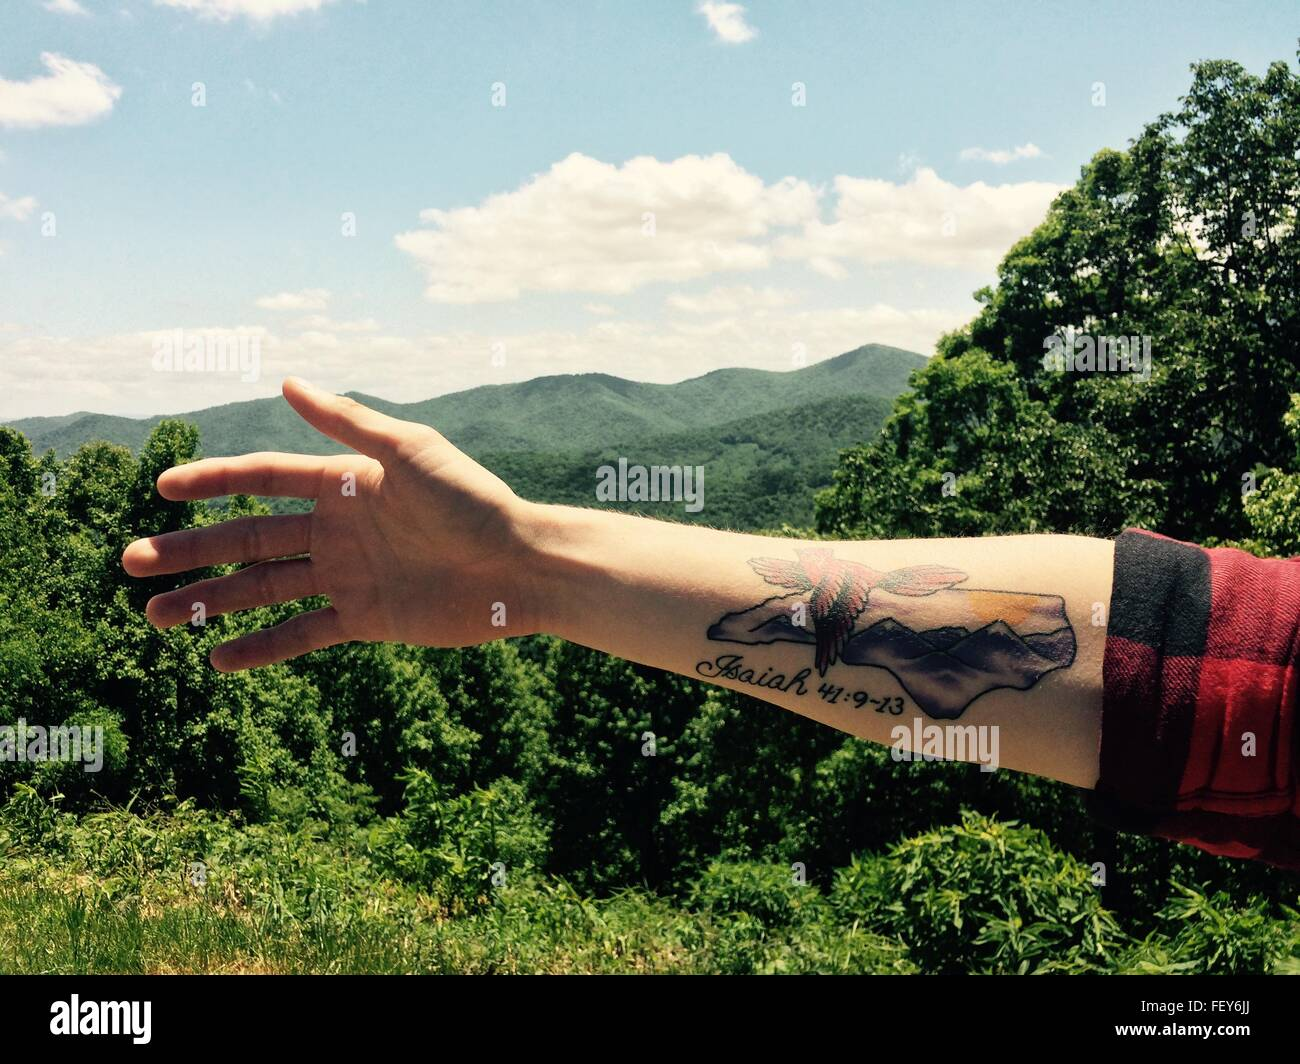 Arm And Landscape - Stock Image